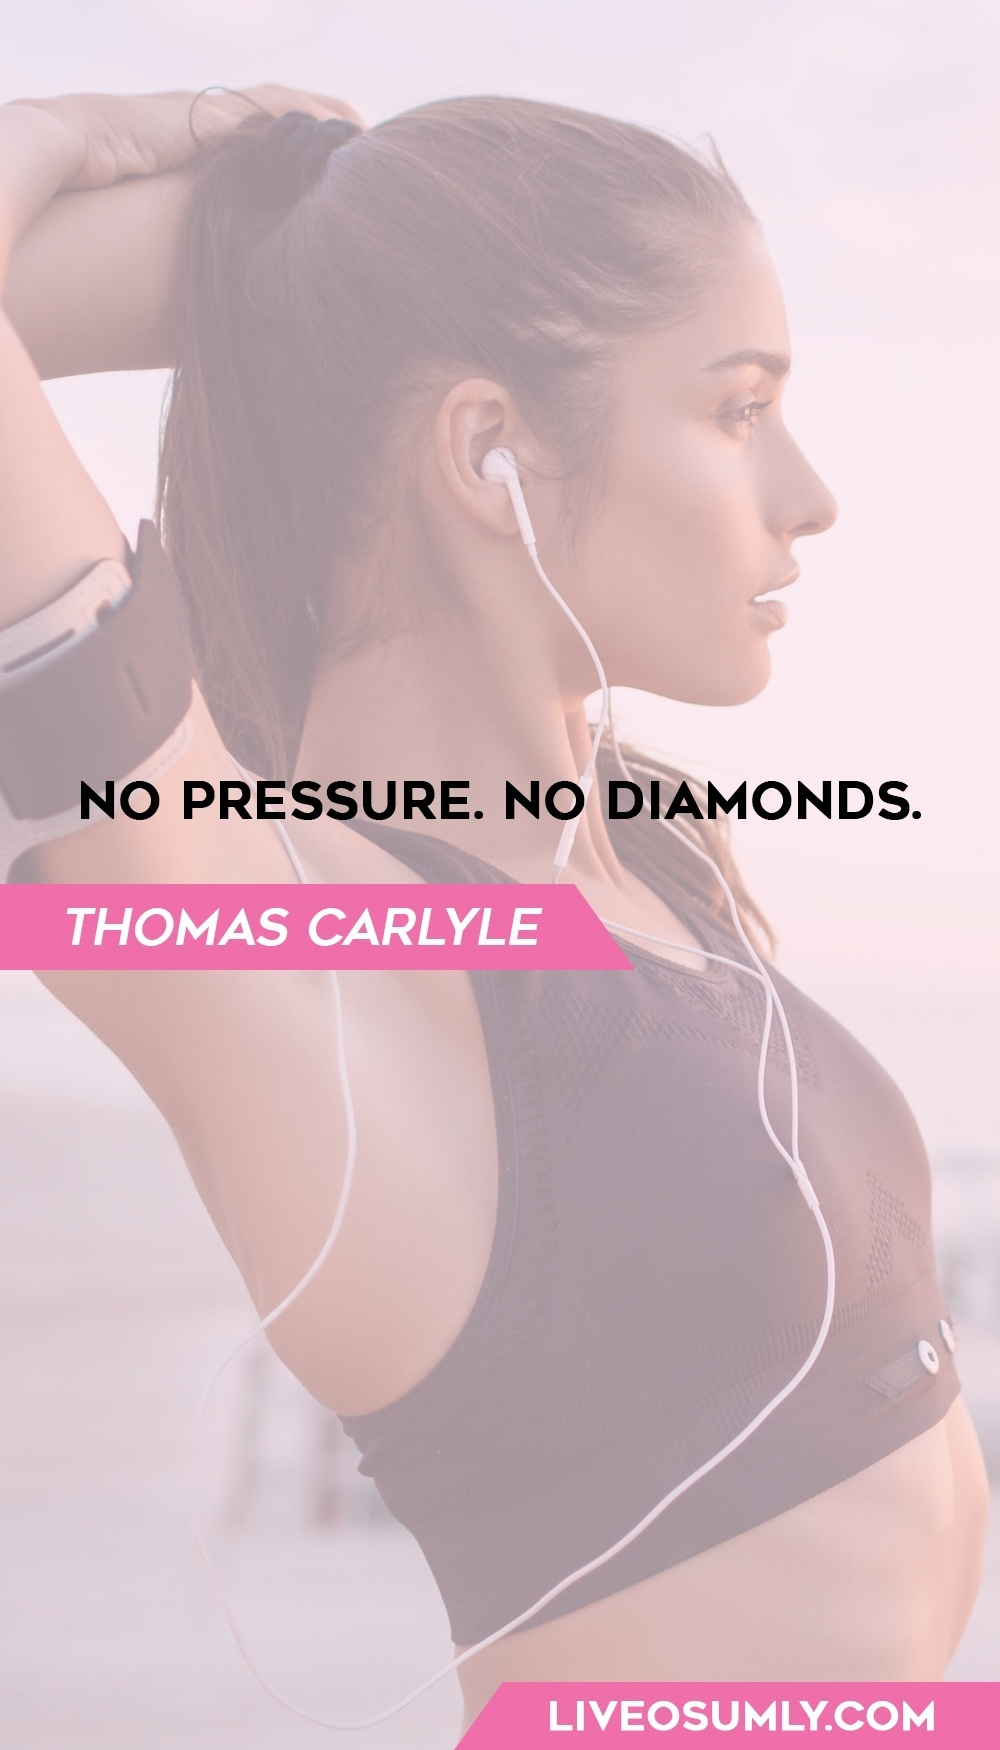 33. Thomas Carlyle Motivational Quotes